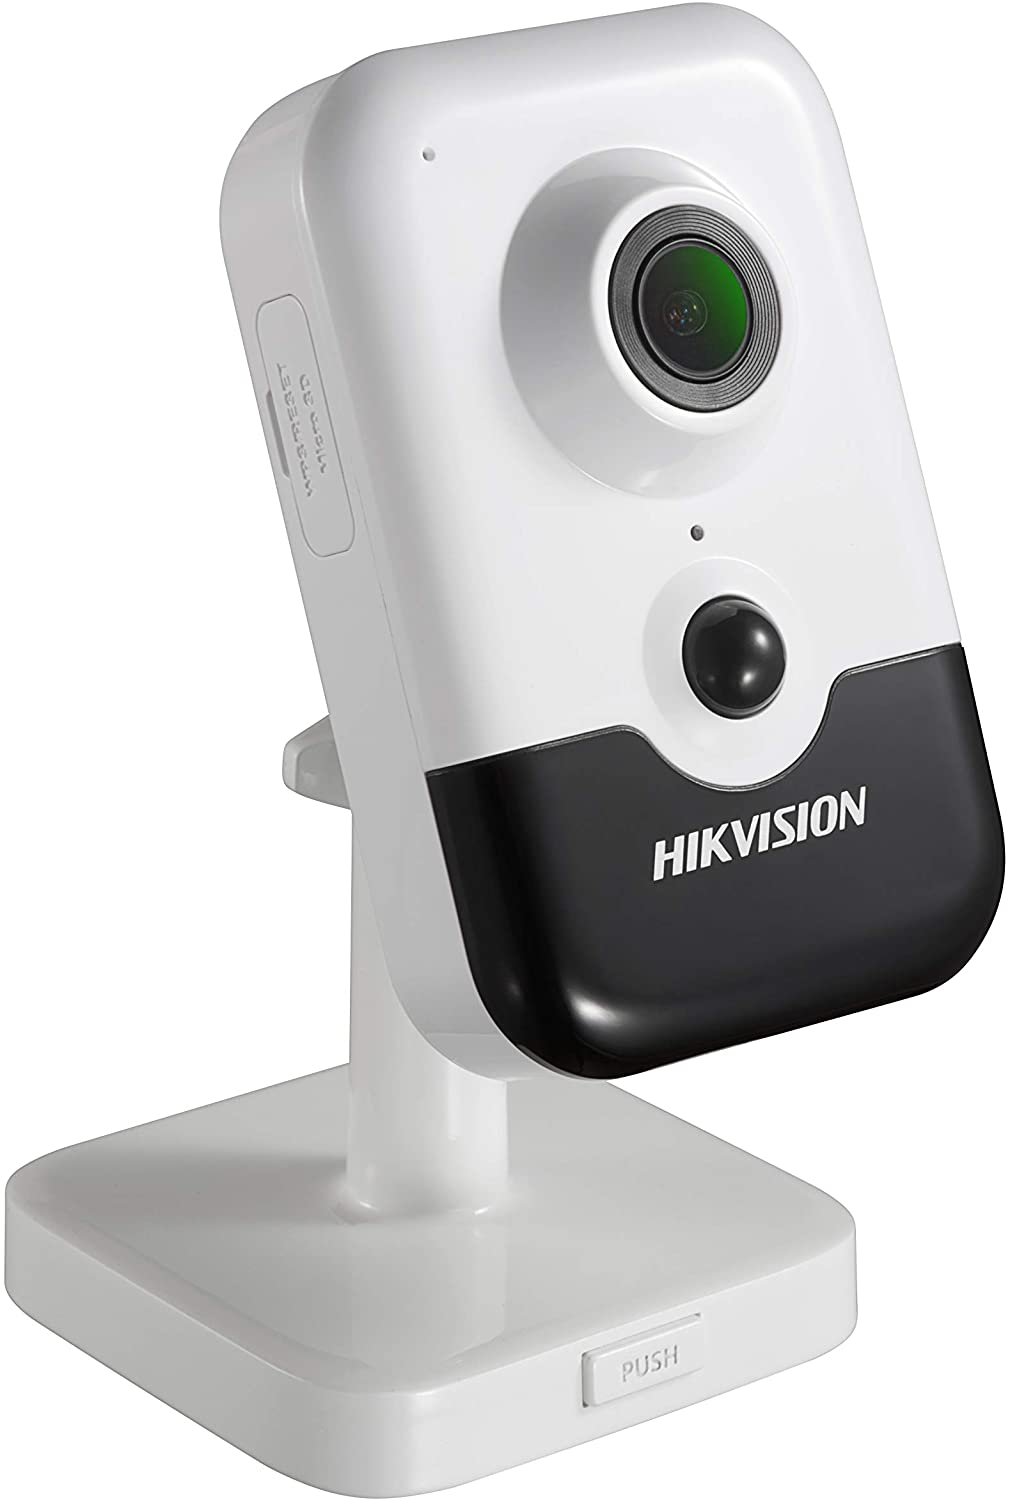 HIKVISION PRO  DS-2CD2425FWD-IW(2.8mm)